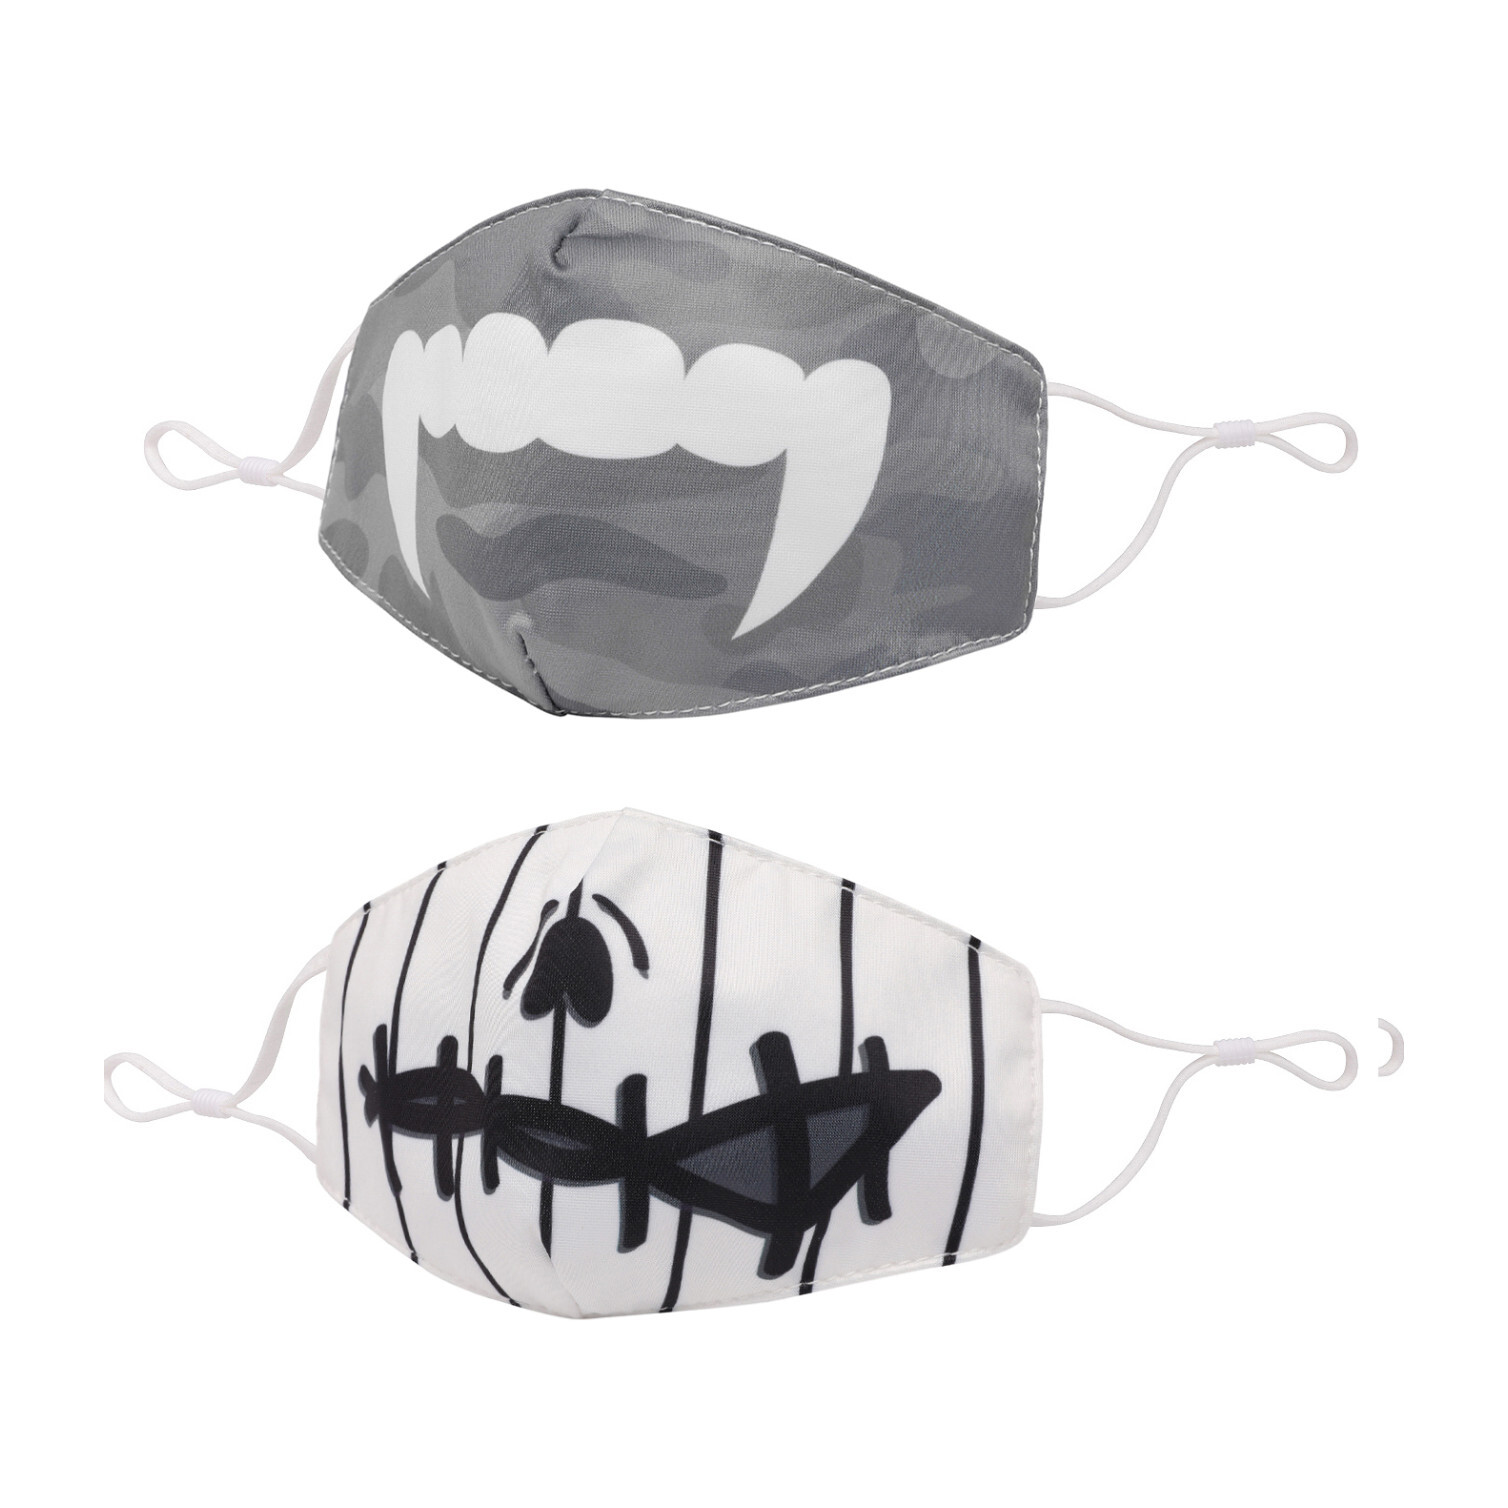 Vampire Fangs and Zombie Striped Face Mask Set